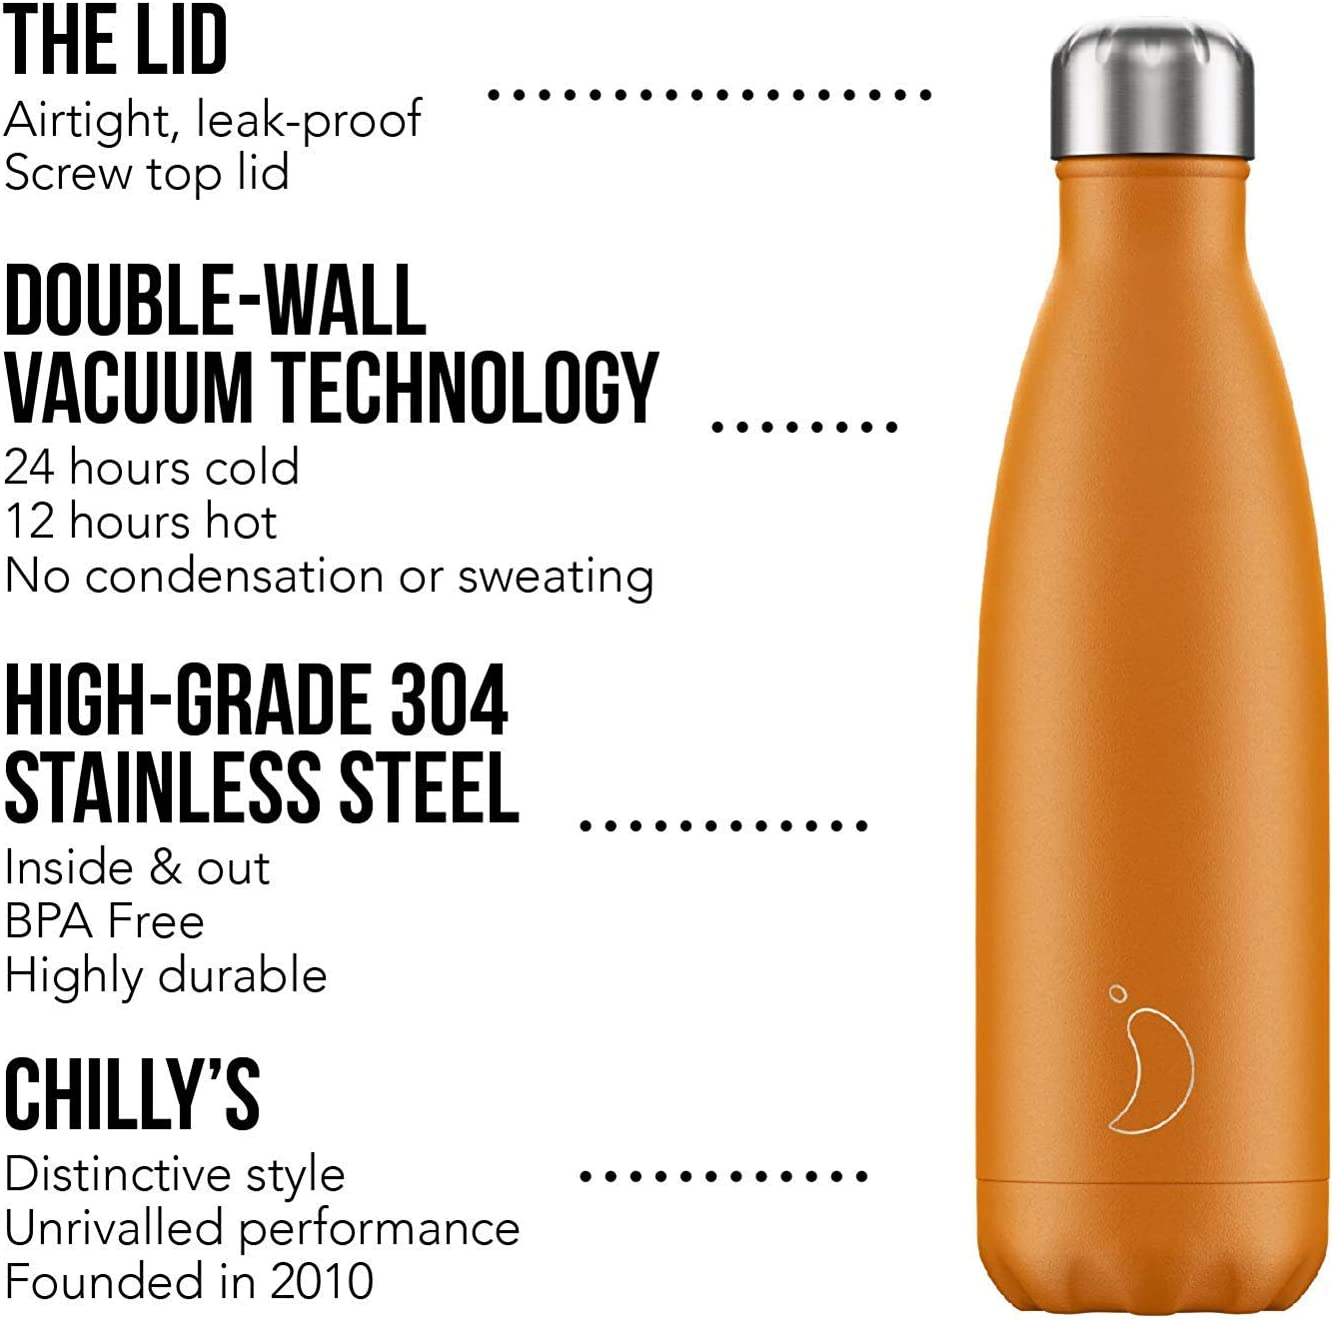 Keeps Cold for 24+ Hrs BPA-Free Stainless Steel Hot for 12 Hrs Reusable Water Bottle Chillys Bottles Double Walled Vacuum Insulated No Sweating Leak-Proof